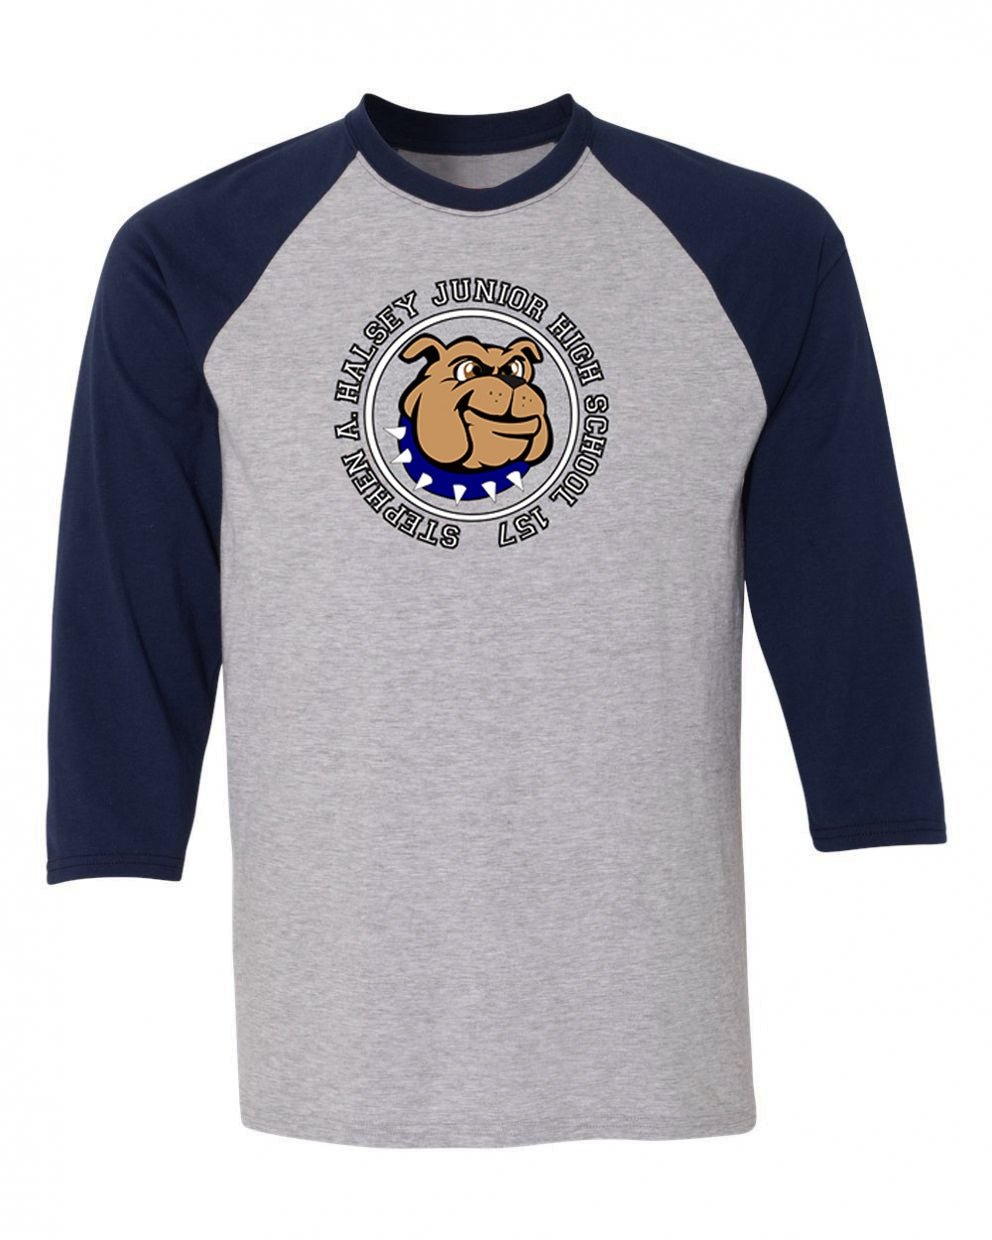 Image of HALSEY BULLDOGS COLORBLOCK BASEBALL TEE NAVY/GREY